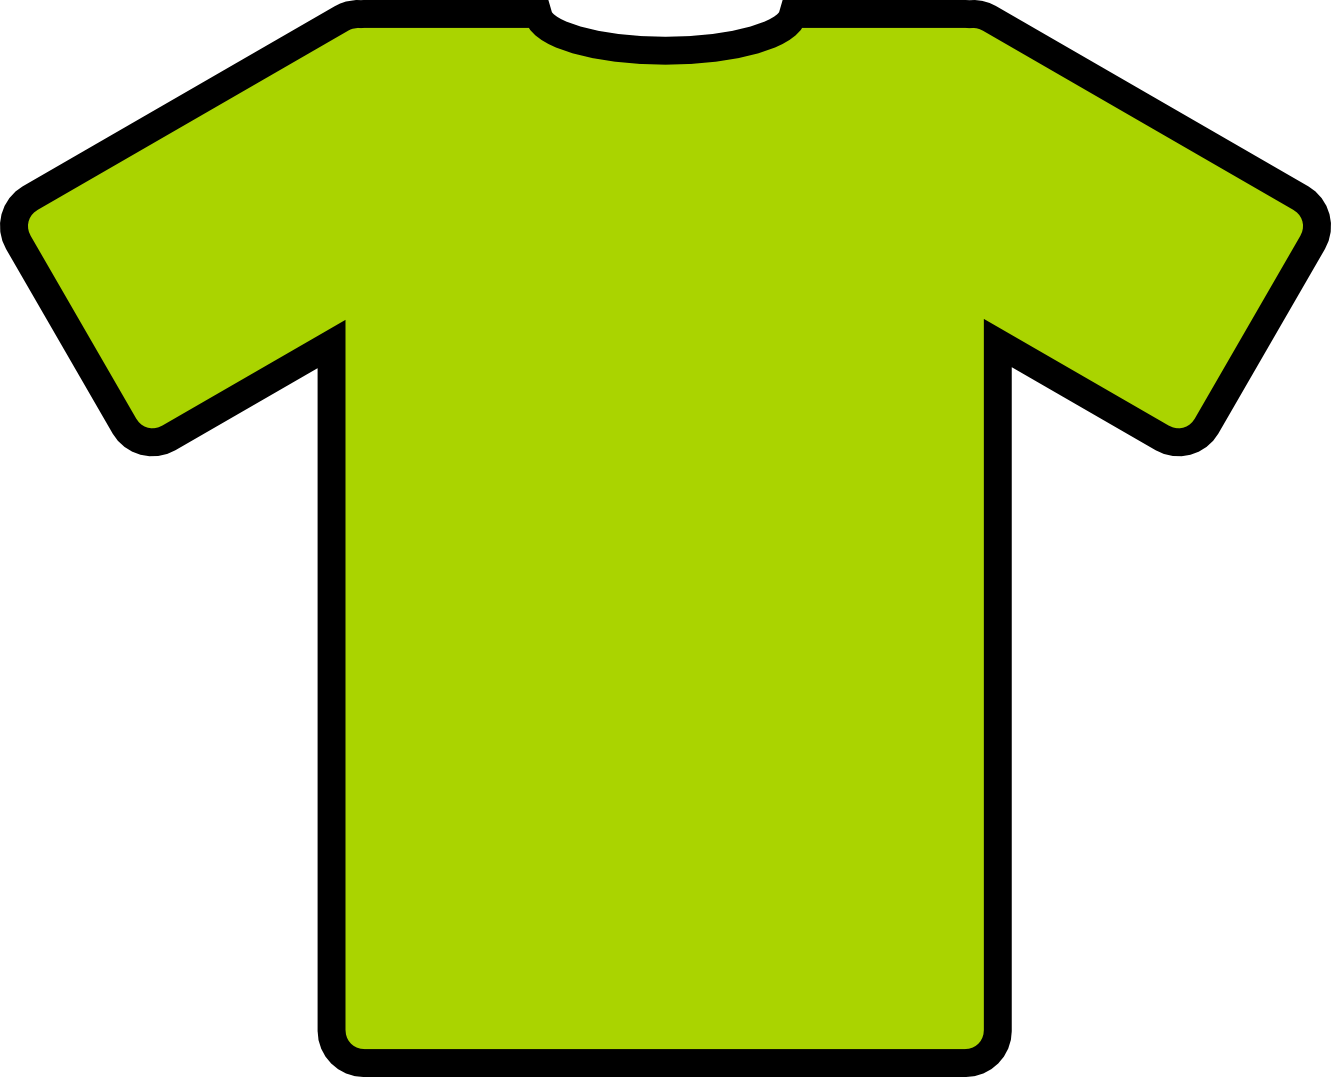 hight resolution of kids shirt clipart clipart library free clipart images